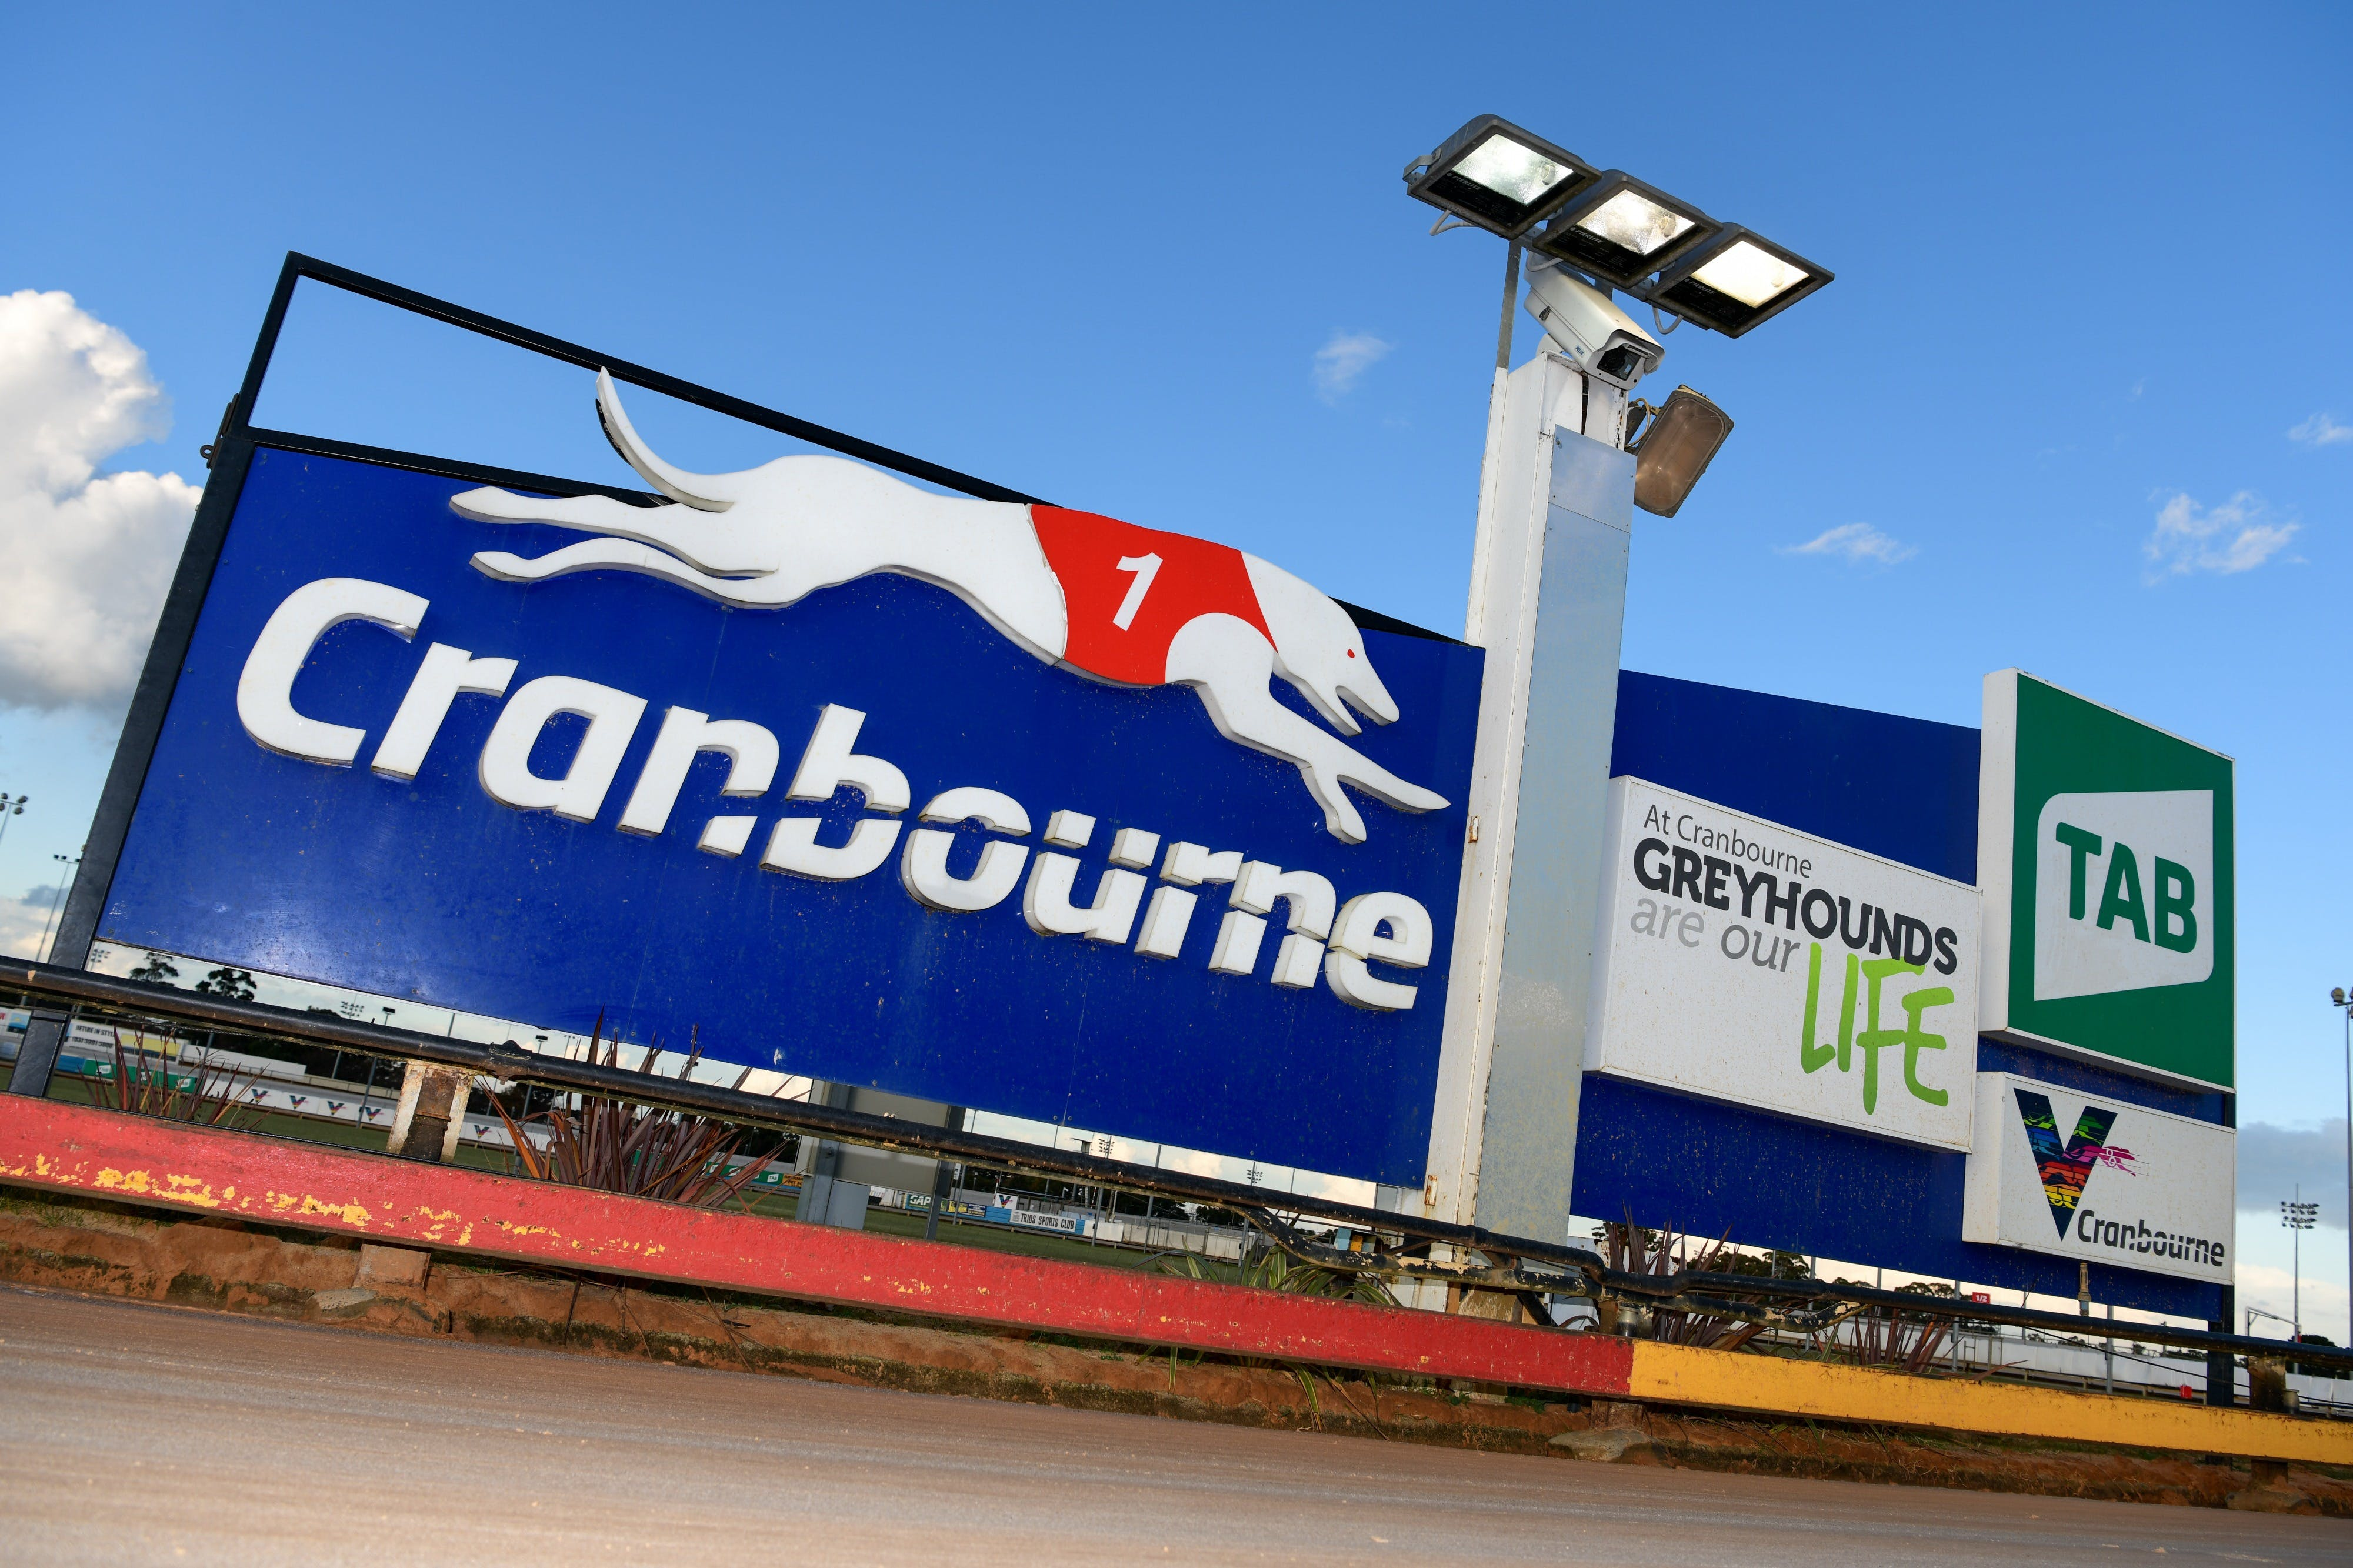 Cranbourne Greyhound Racing Club - Attractions